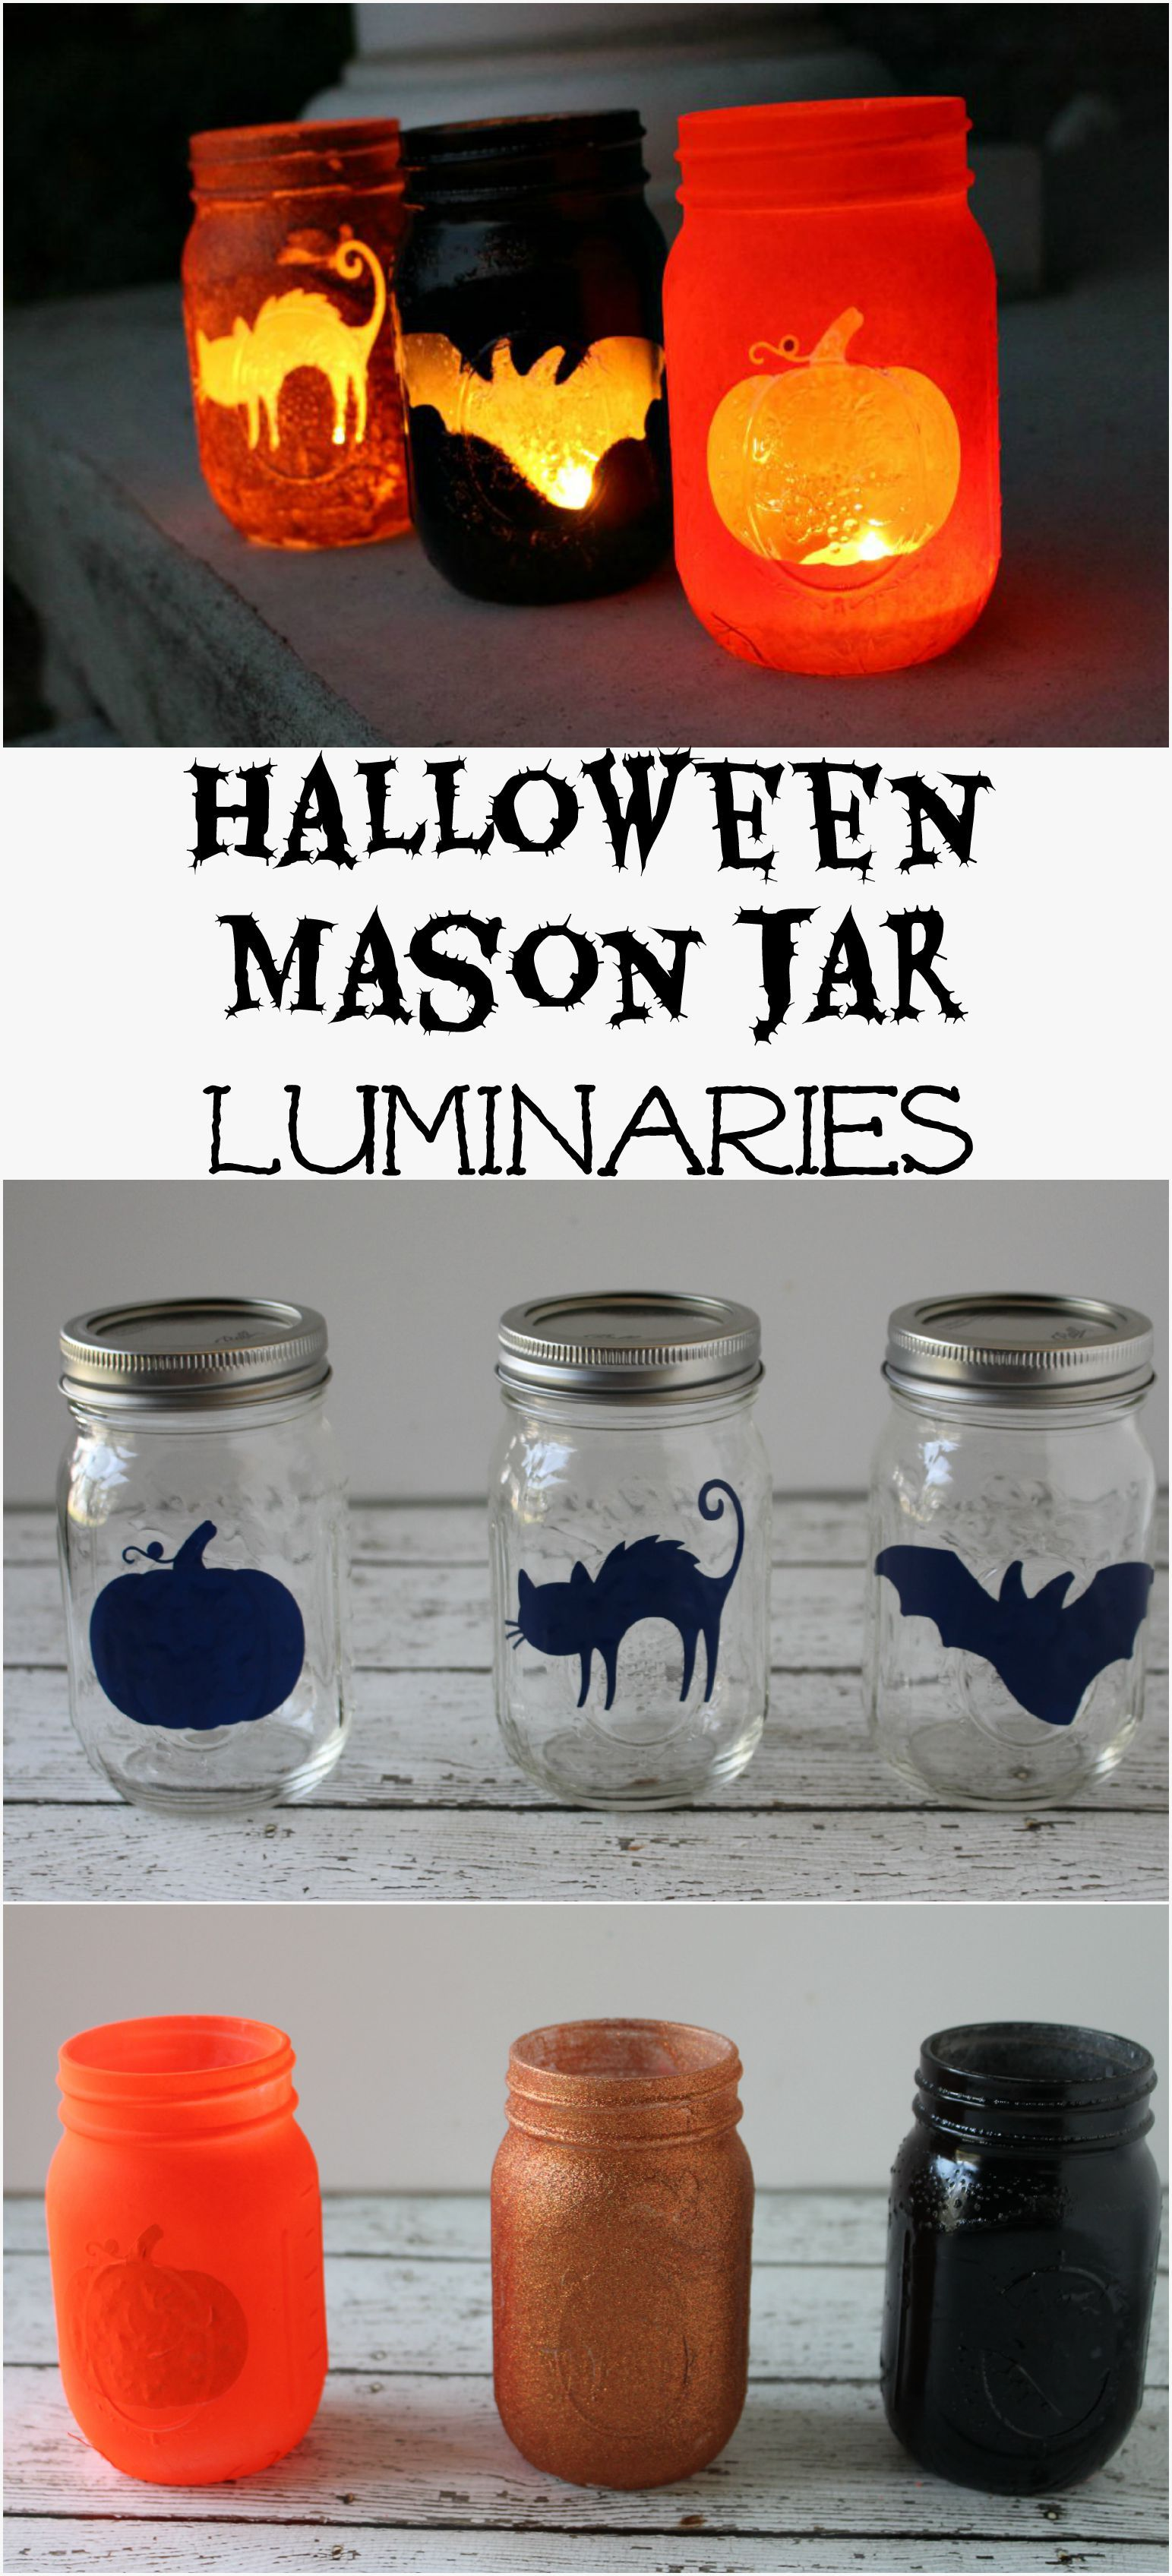 Halloween Mason Jar Luminaries The EASIEST